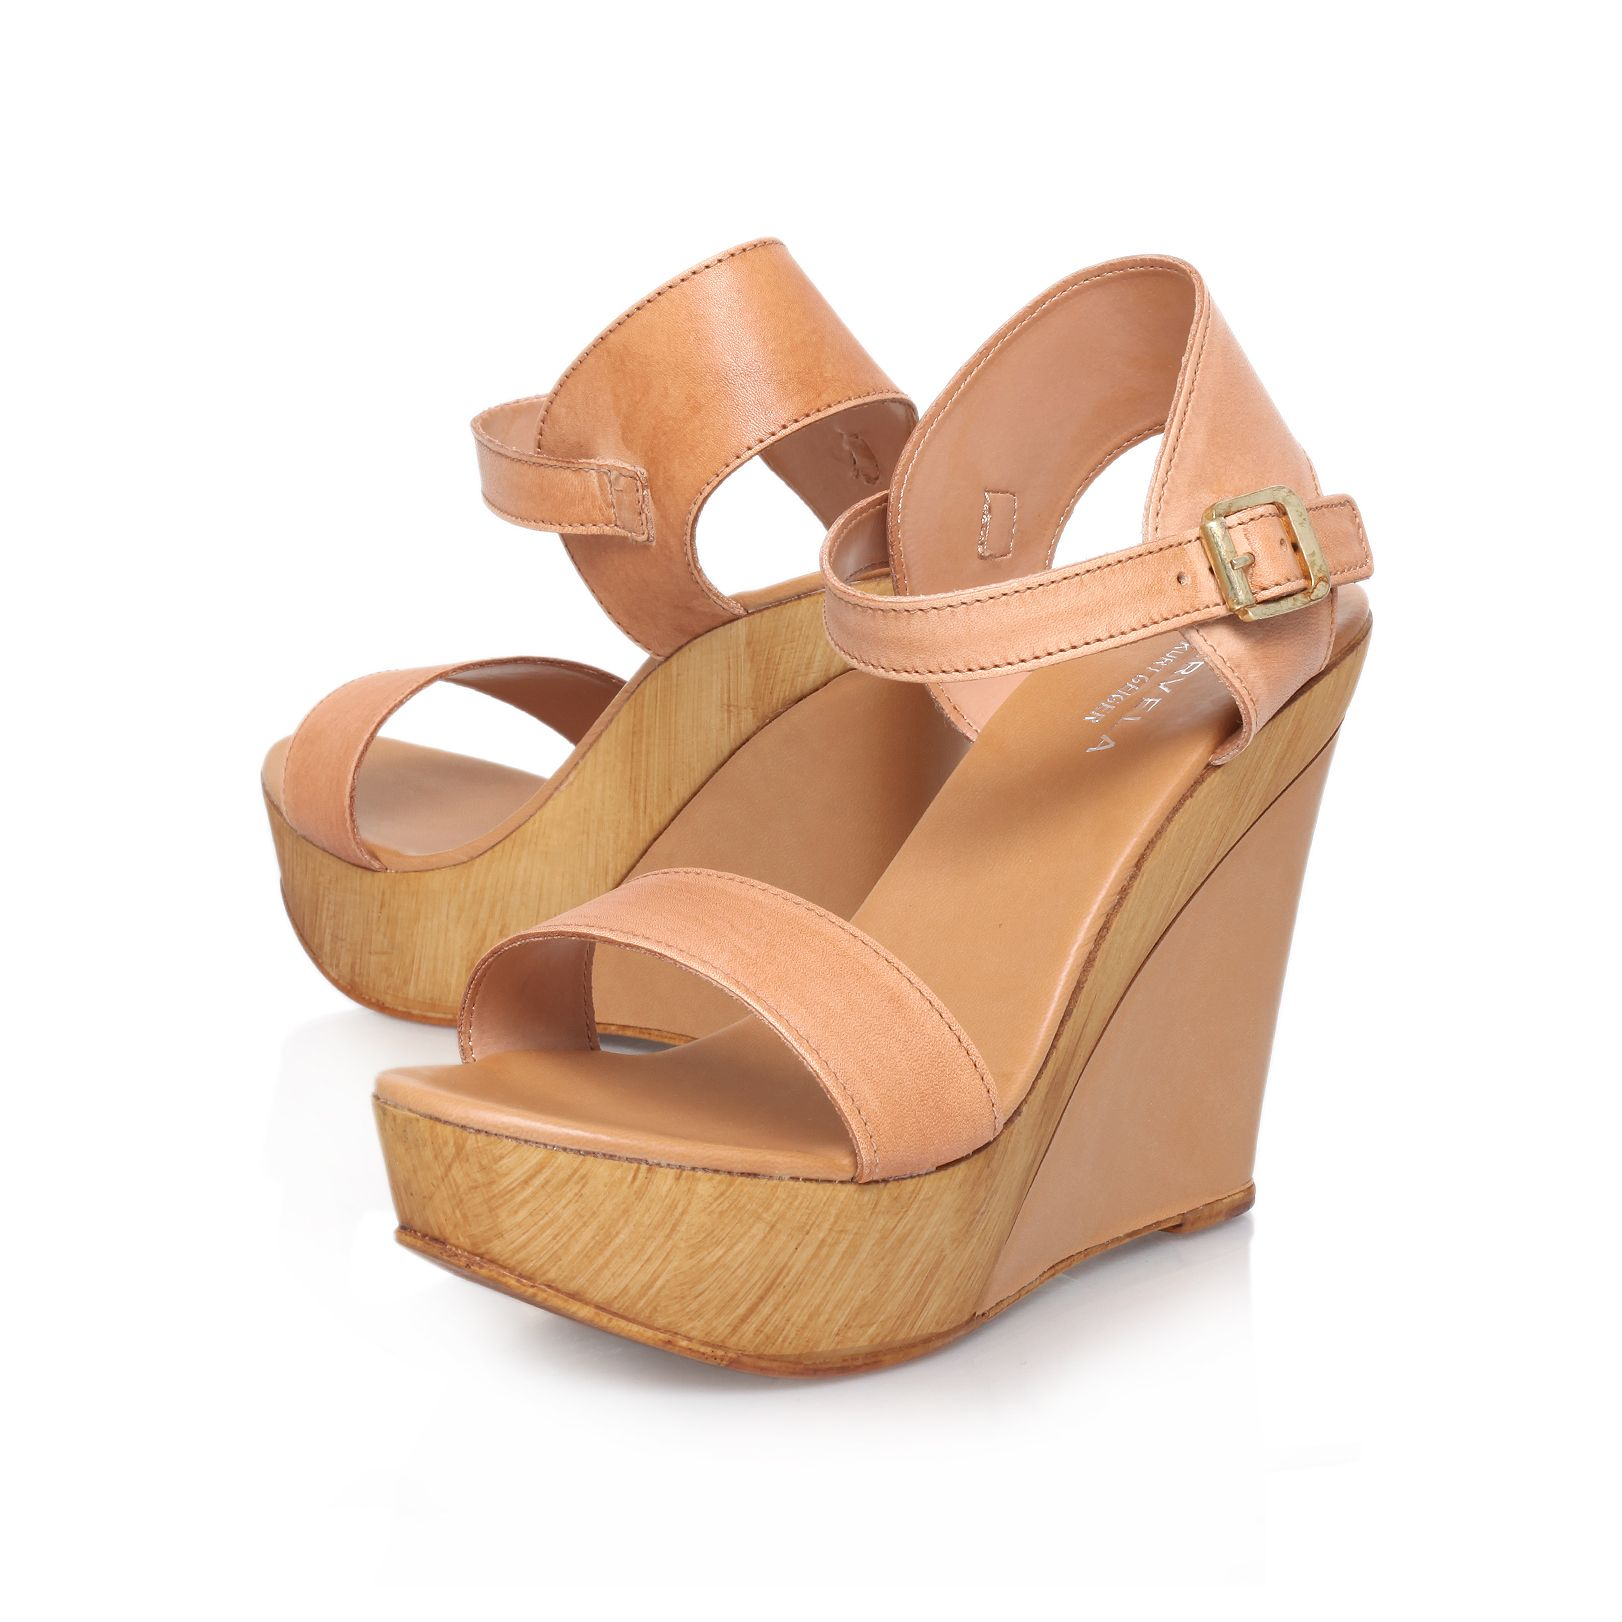 Knave high heel wedge sandals